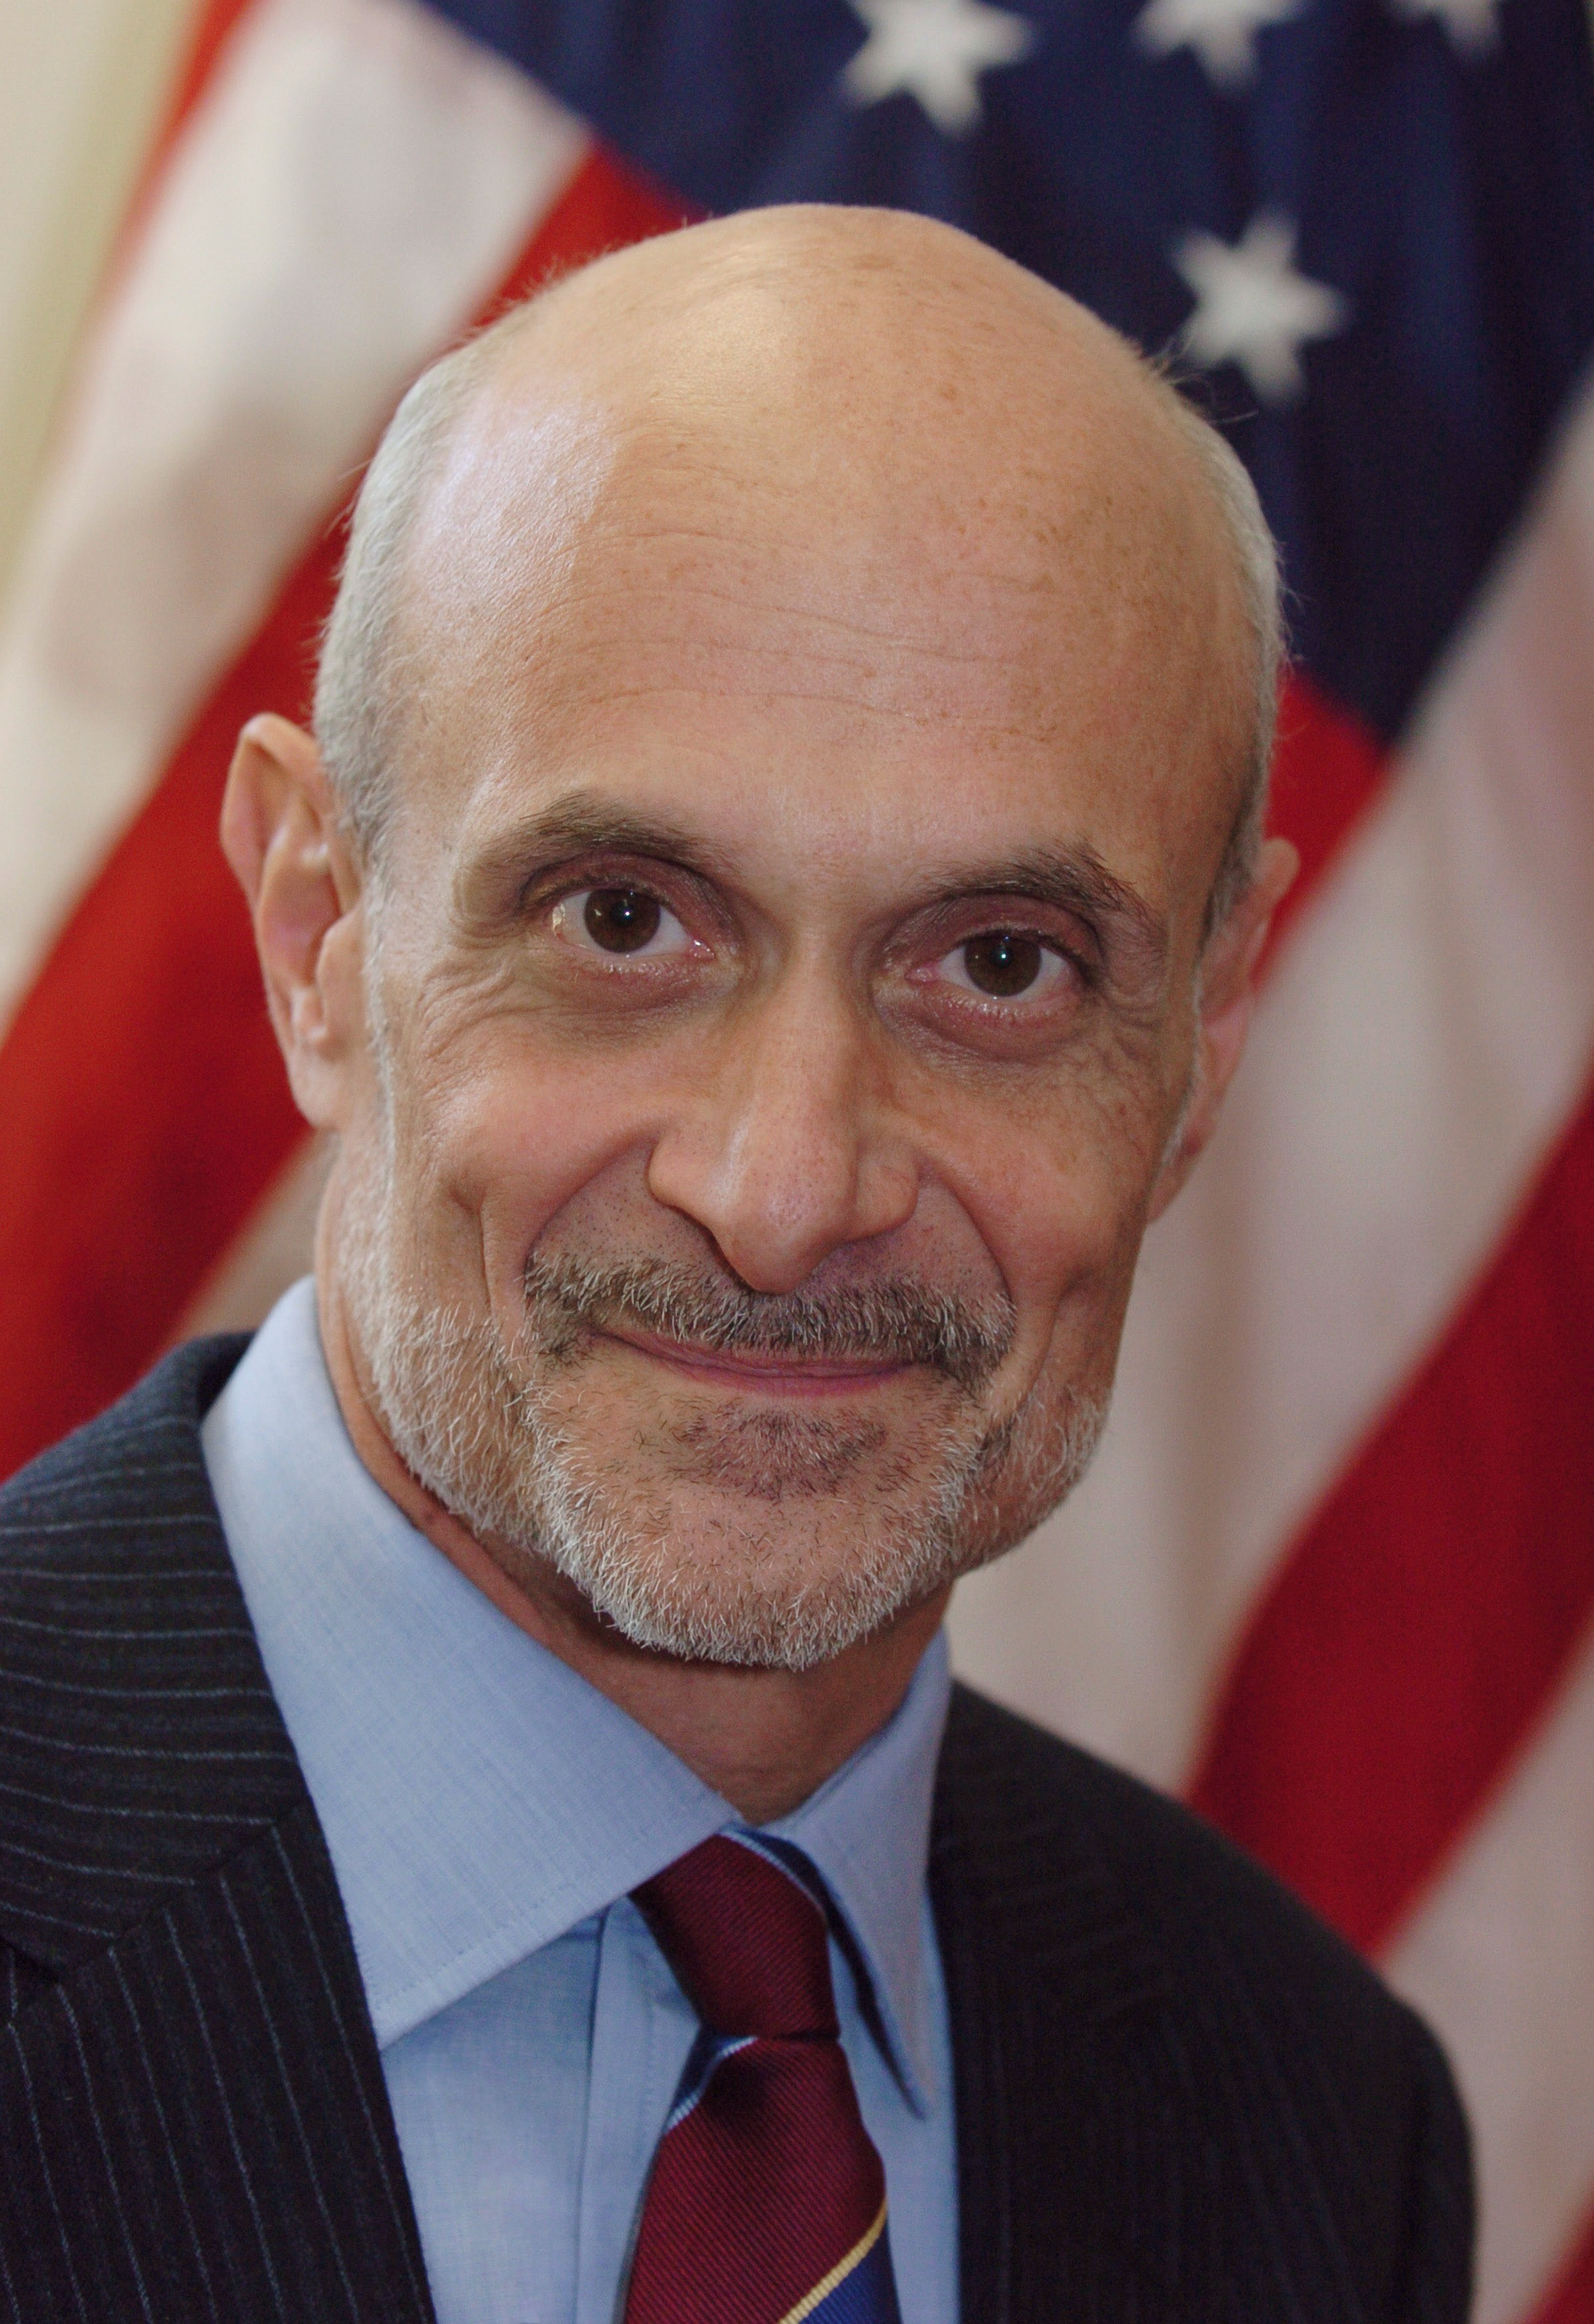 https://i1.wp.com/upload.wikimedia.org/wikipedia/commons/5/5d/Michael_Chertoff,_official_DHS_photo_portrait,_2005.jpg